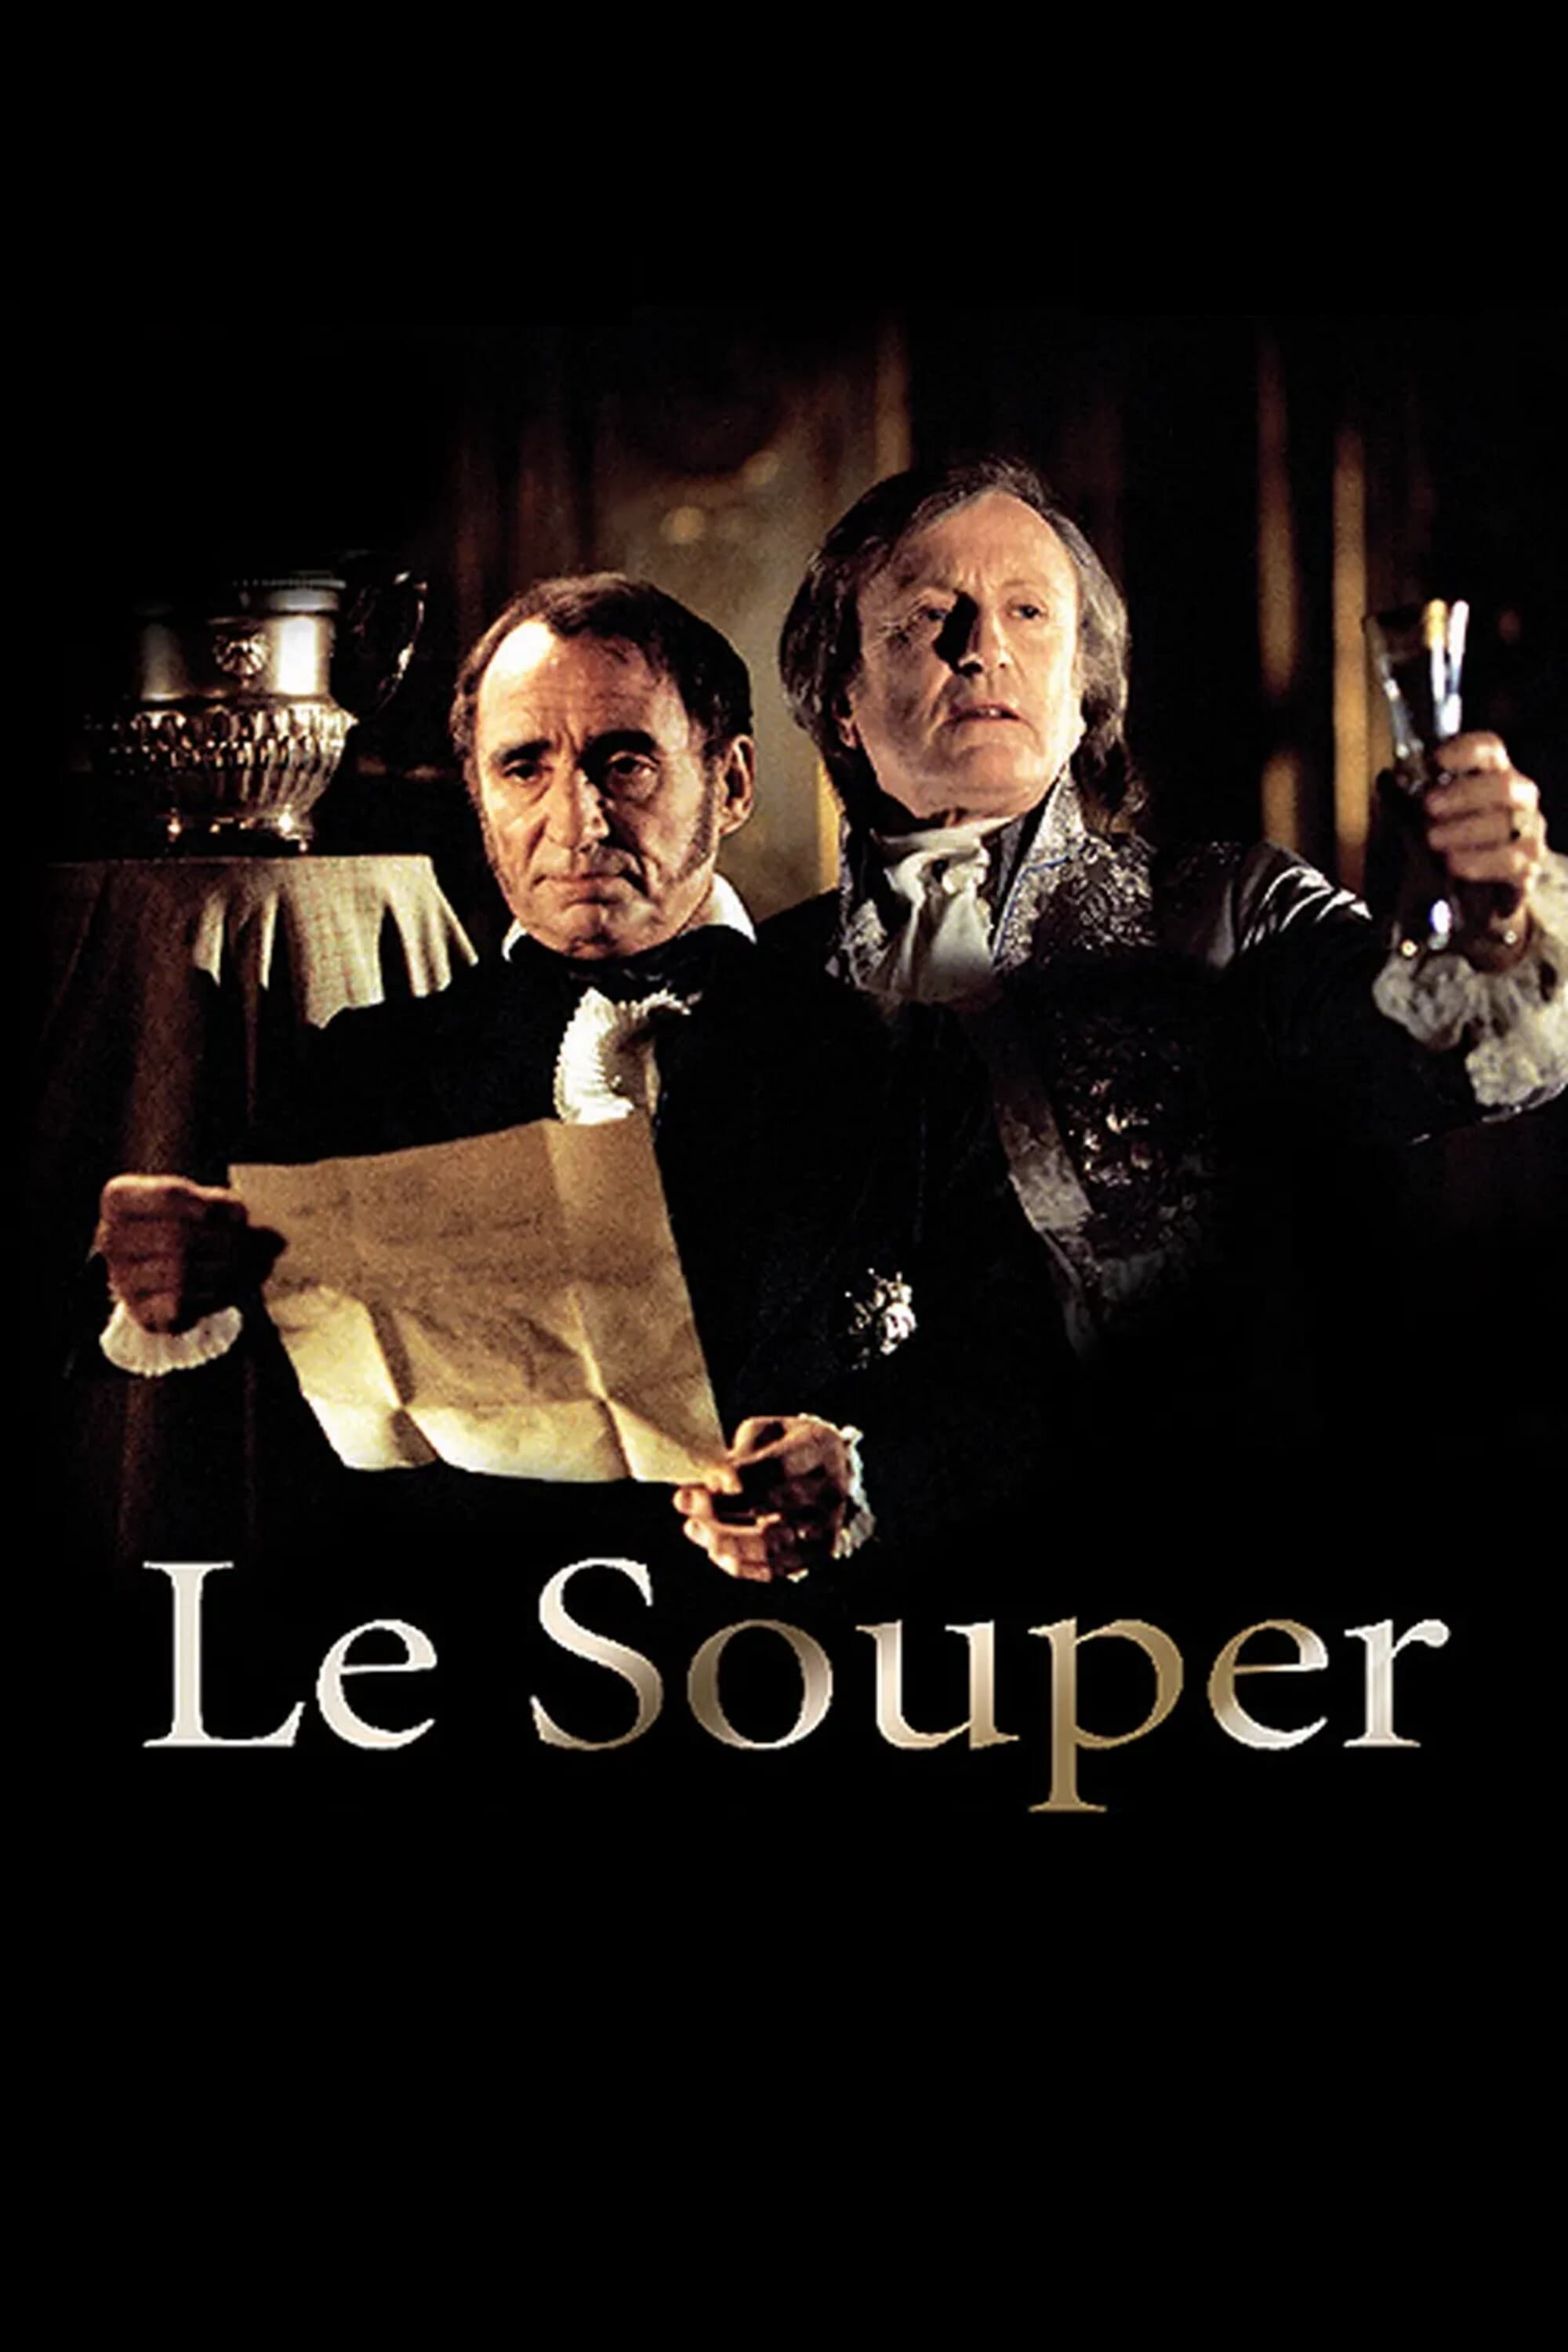 Le Souper 1992 Streaming Complet Vf